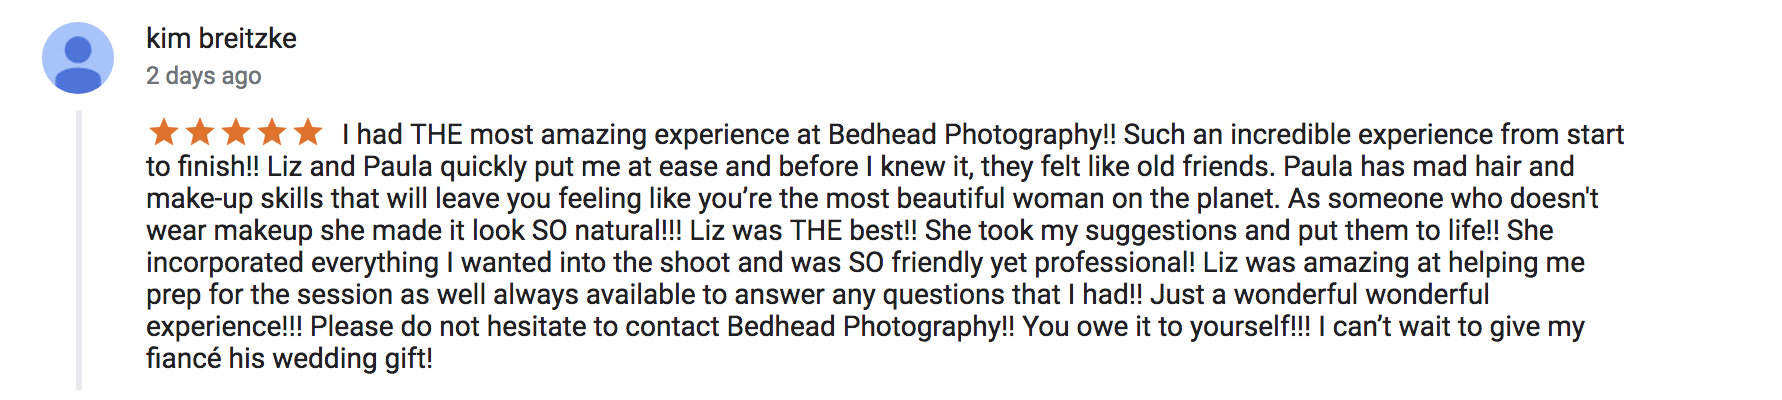 Bedhead-Boudoir-Review.png